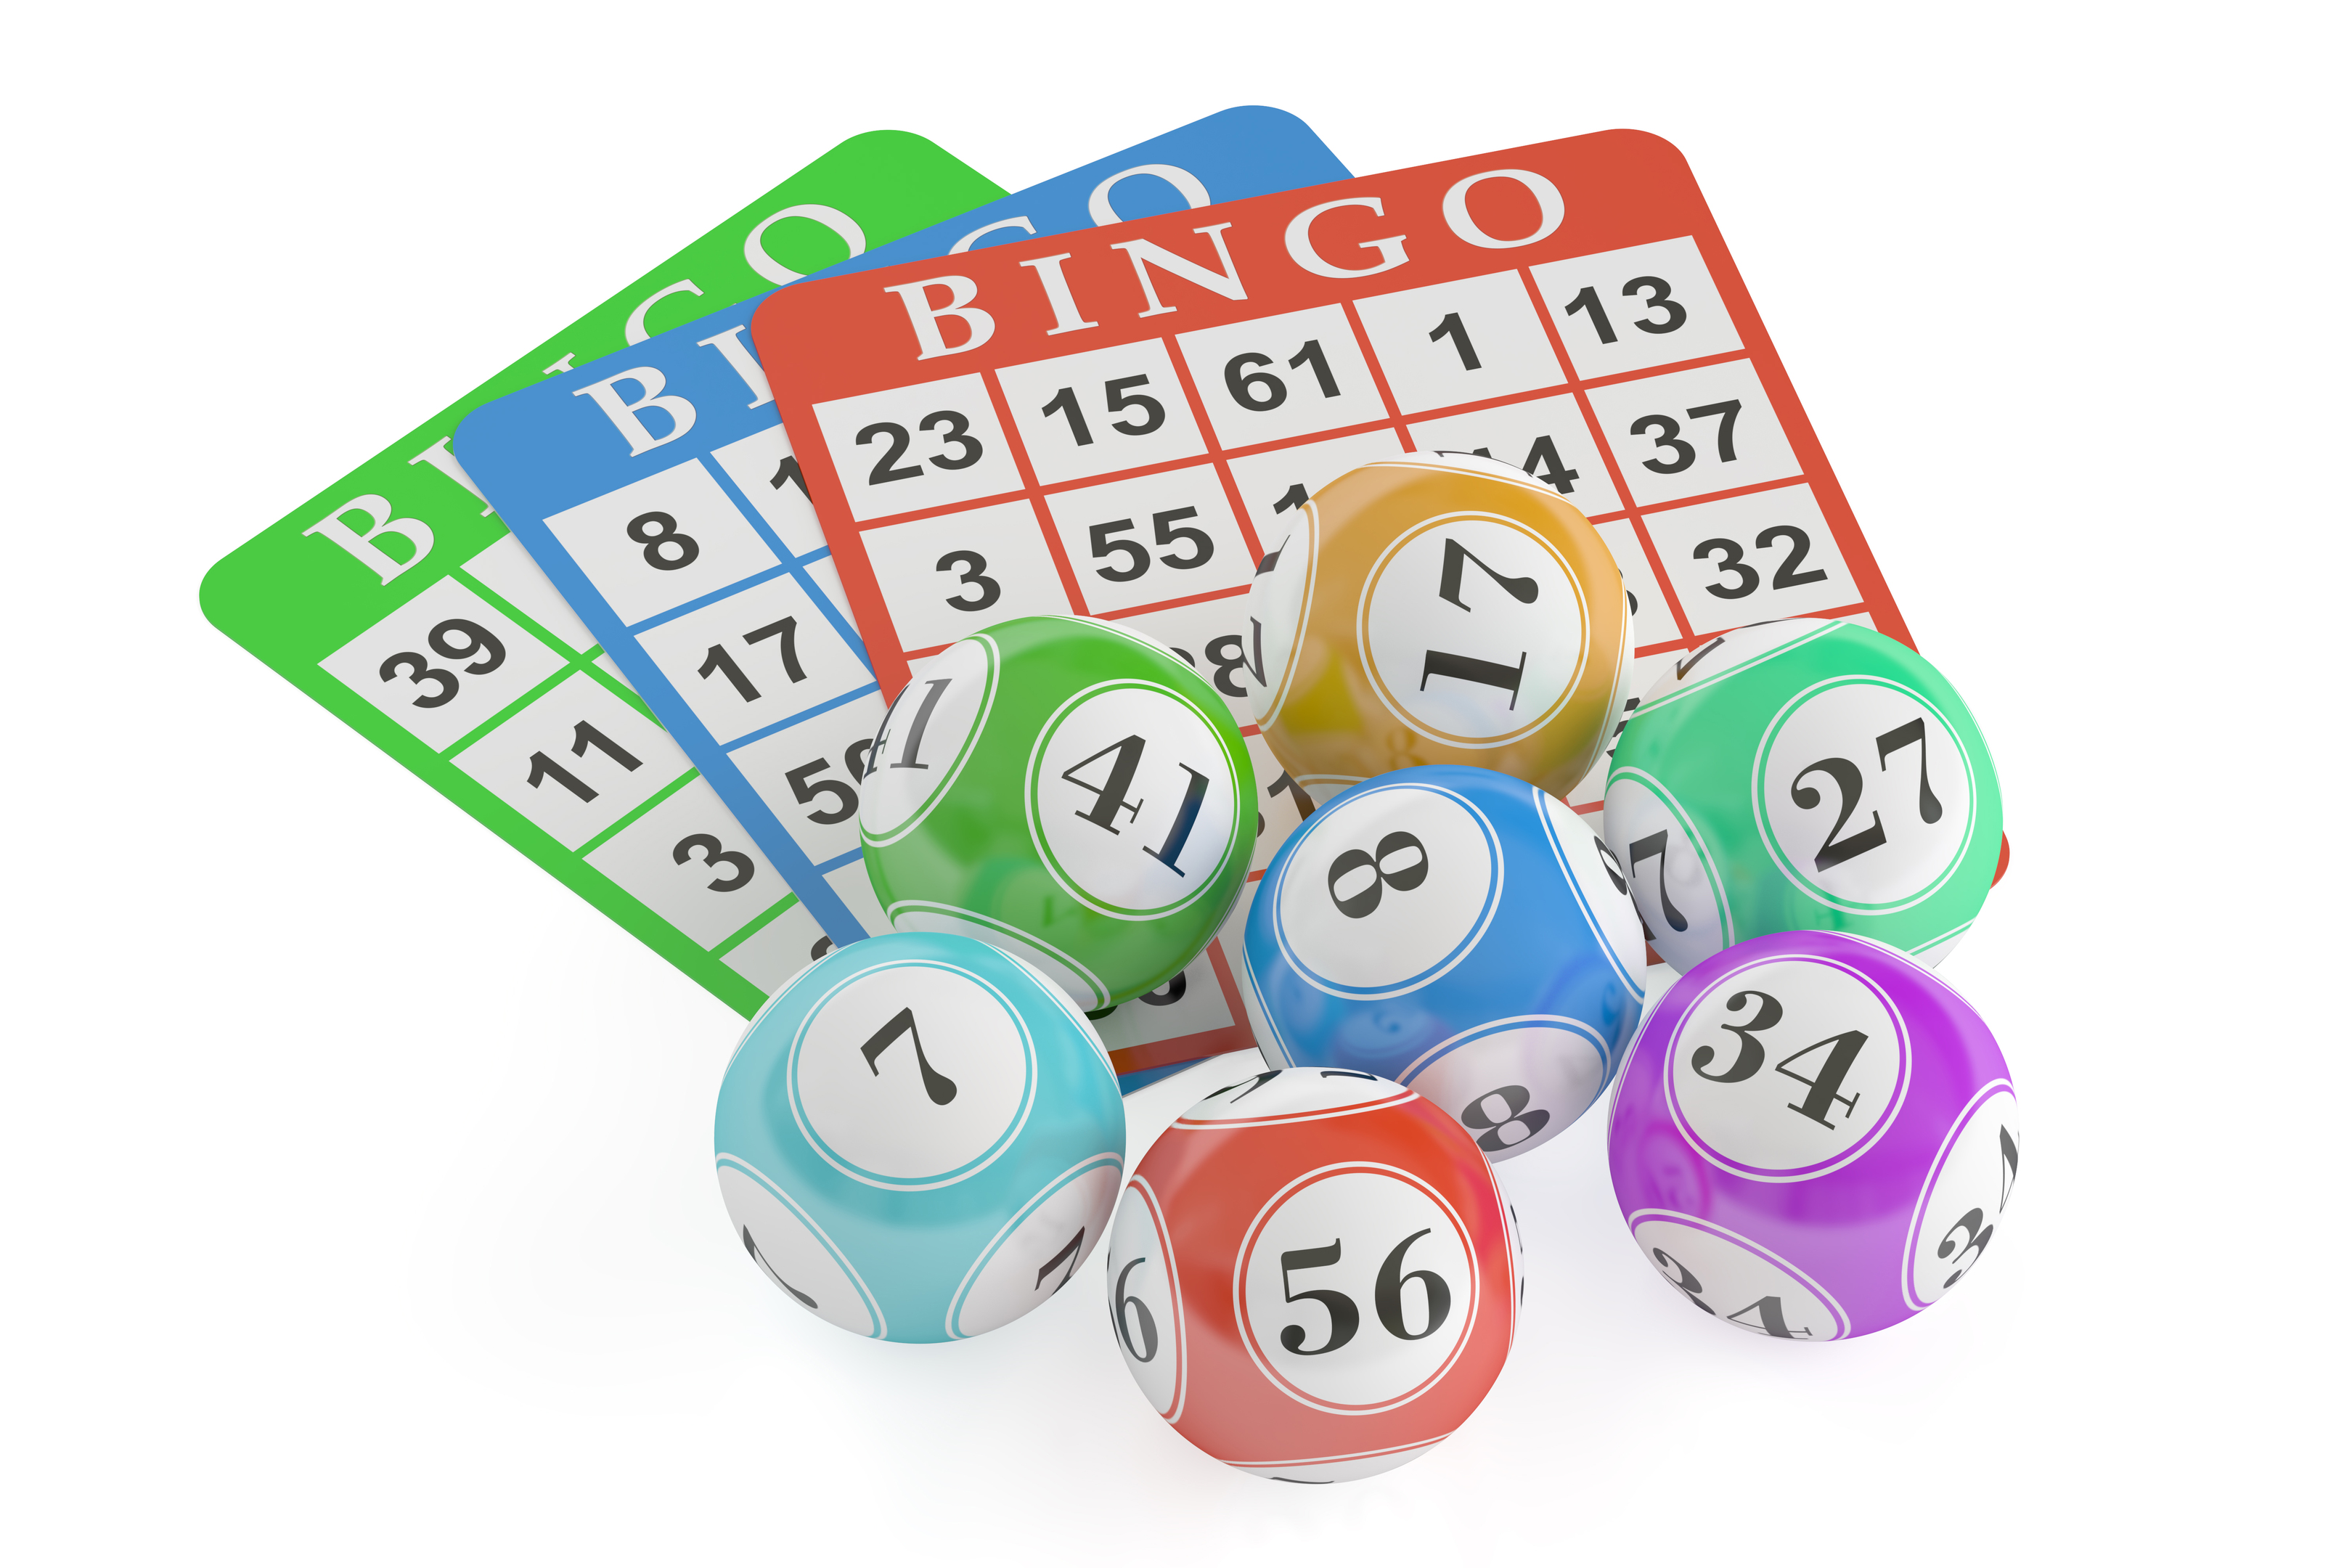 The bingo event will help Bridge of Don and District Men's Shed